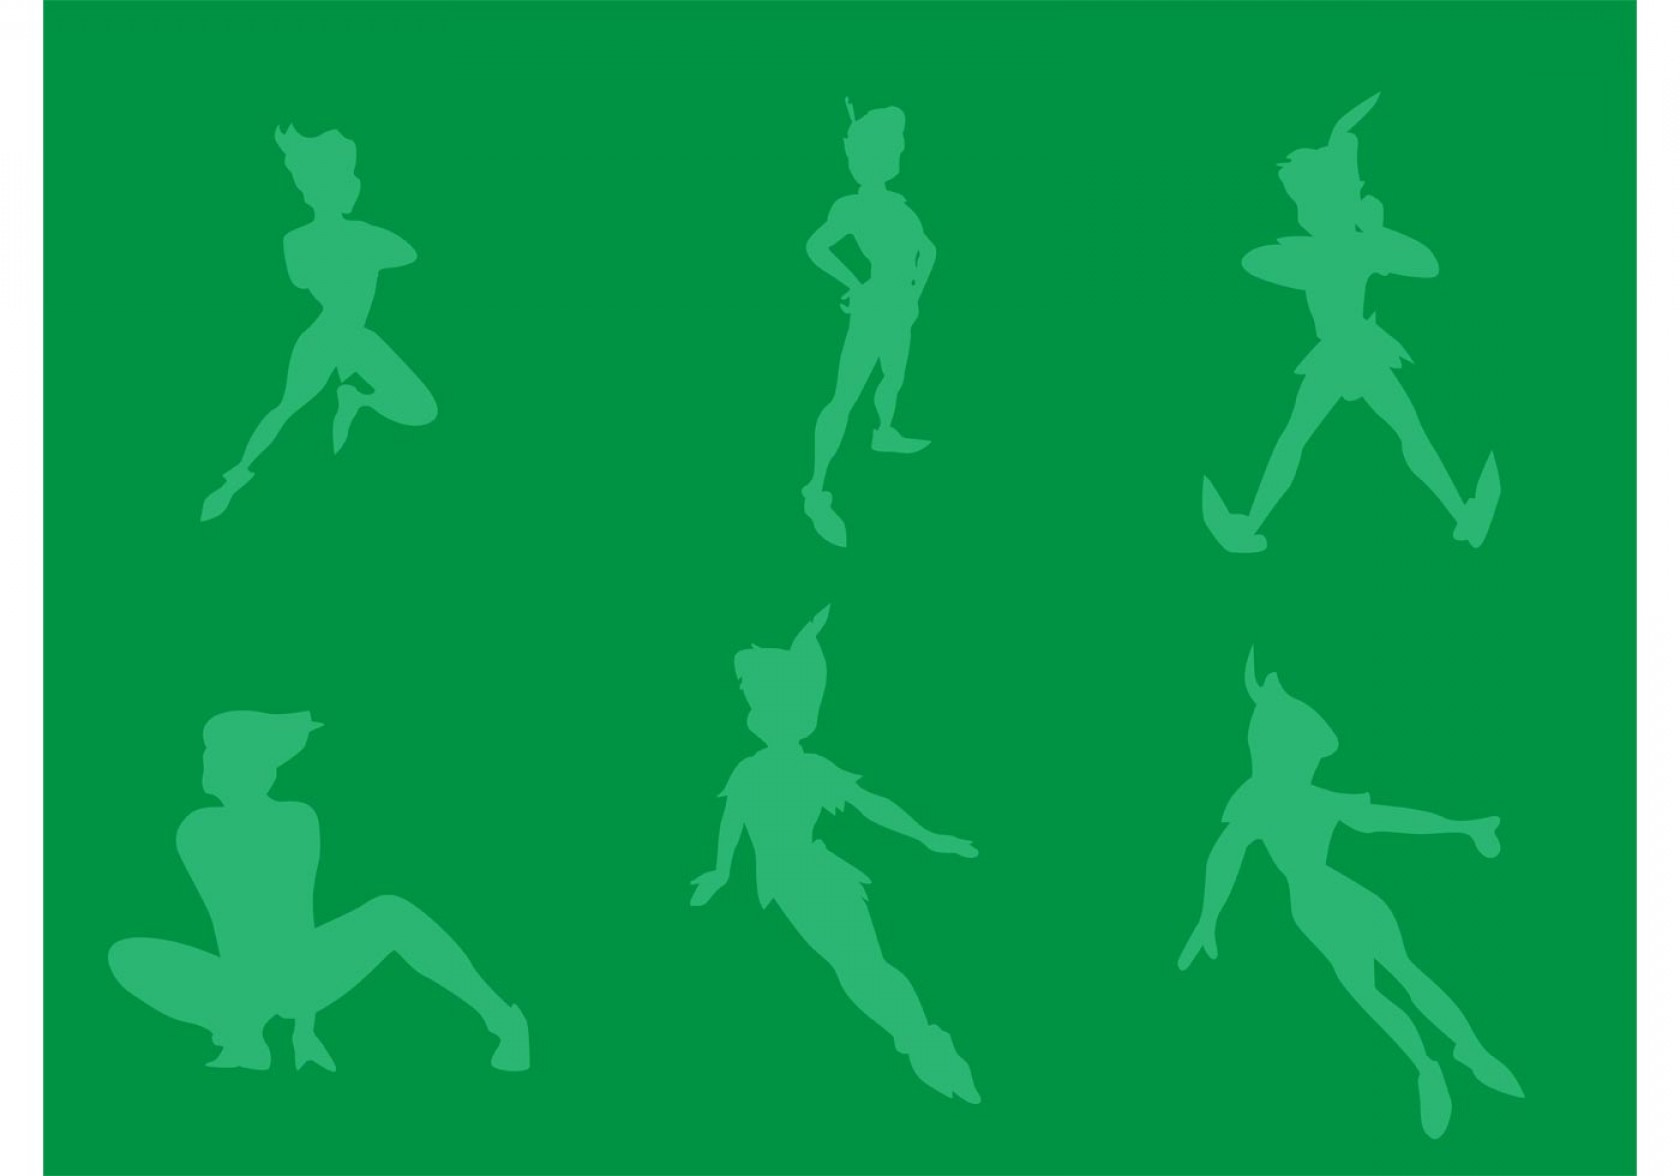 1680x1176 Free Vector Peter Pan Silhouettes Arenawp